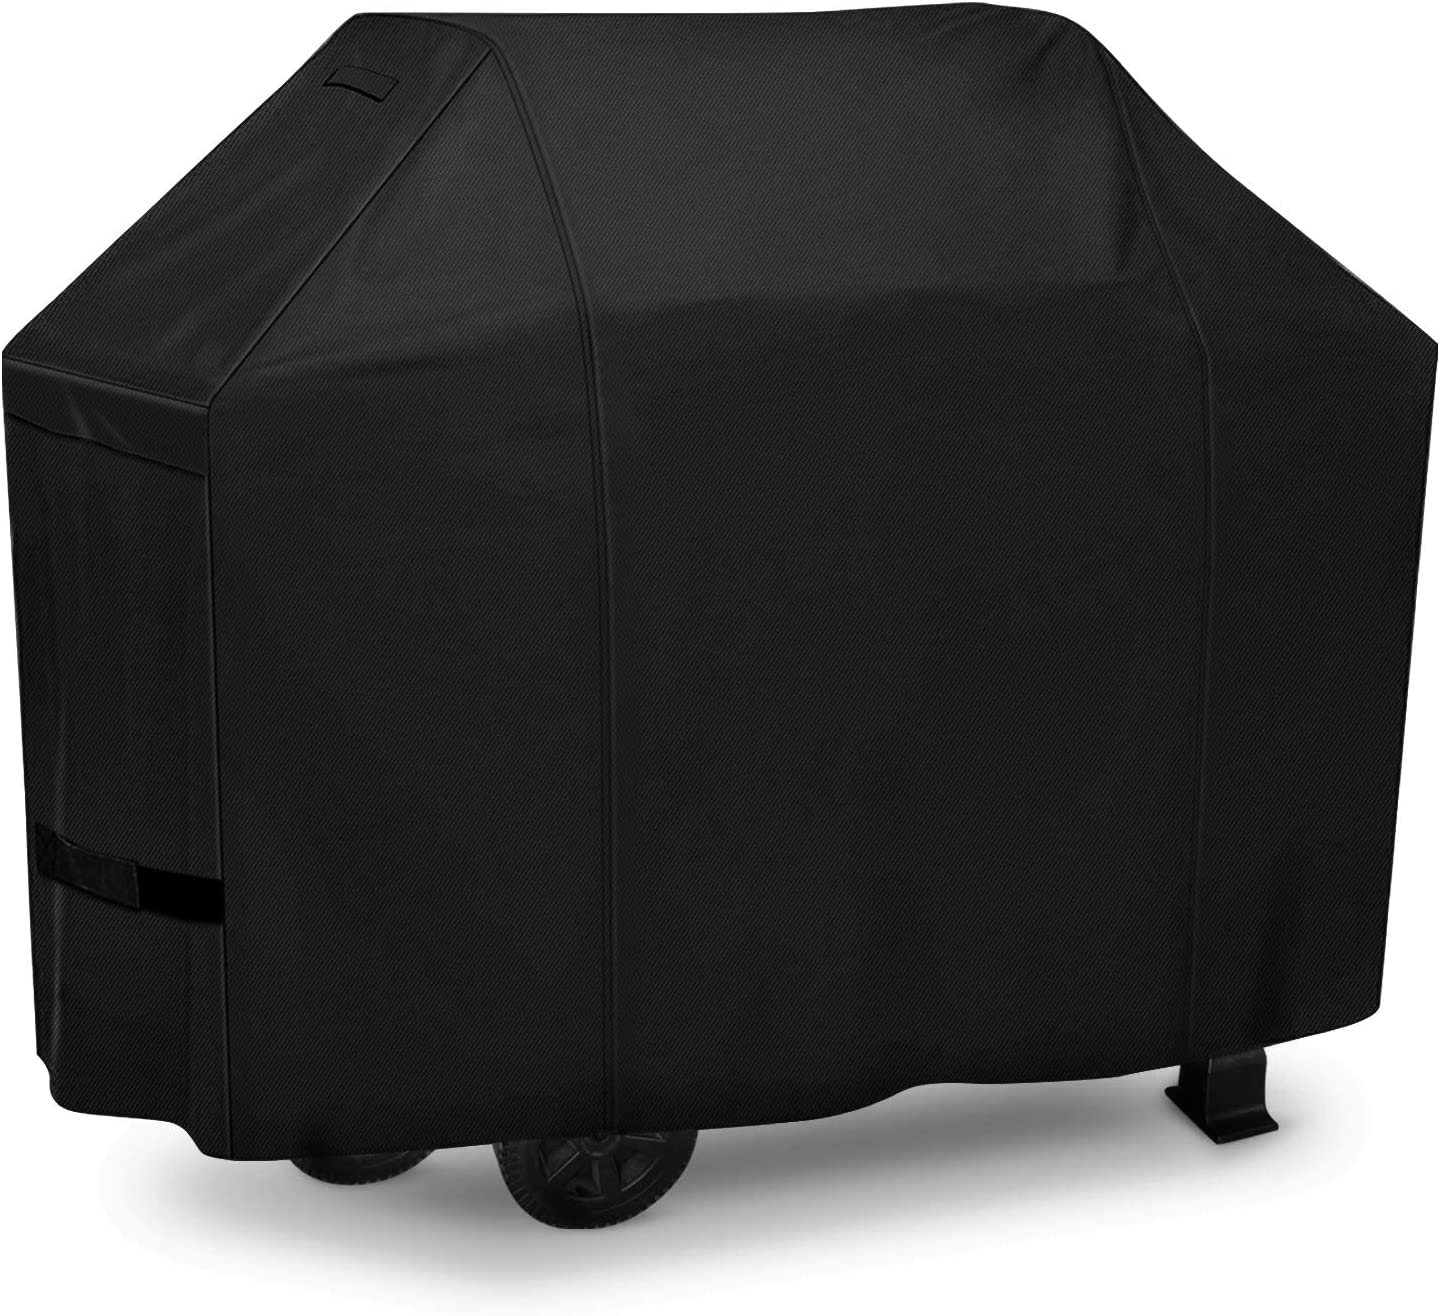 iCOVER 600D Grill Cover - 60 inch Heavy Duty Barbeque Gas Grill Cover 600D Canvas Waterproof No Fading Smoker BBQ Covers, for Weber, Char Broil, Holland, Jenn Air, Brinkmann. : Garden & Outdoor